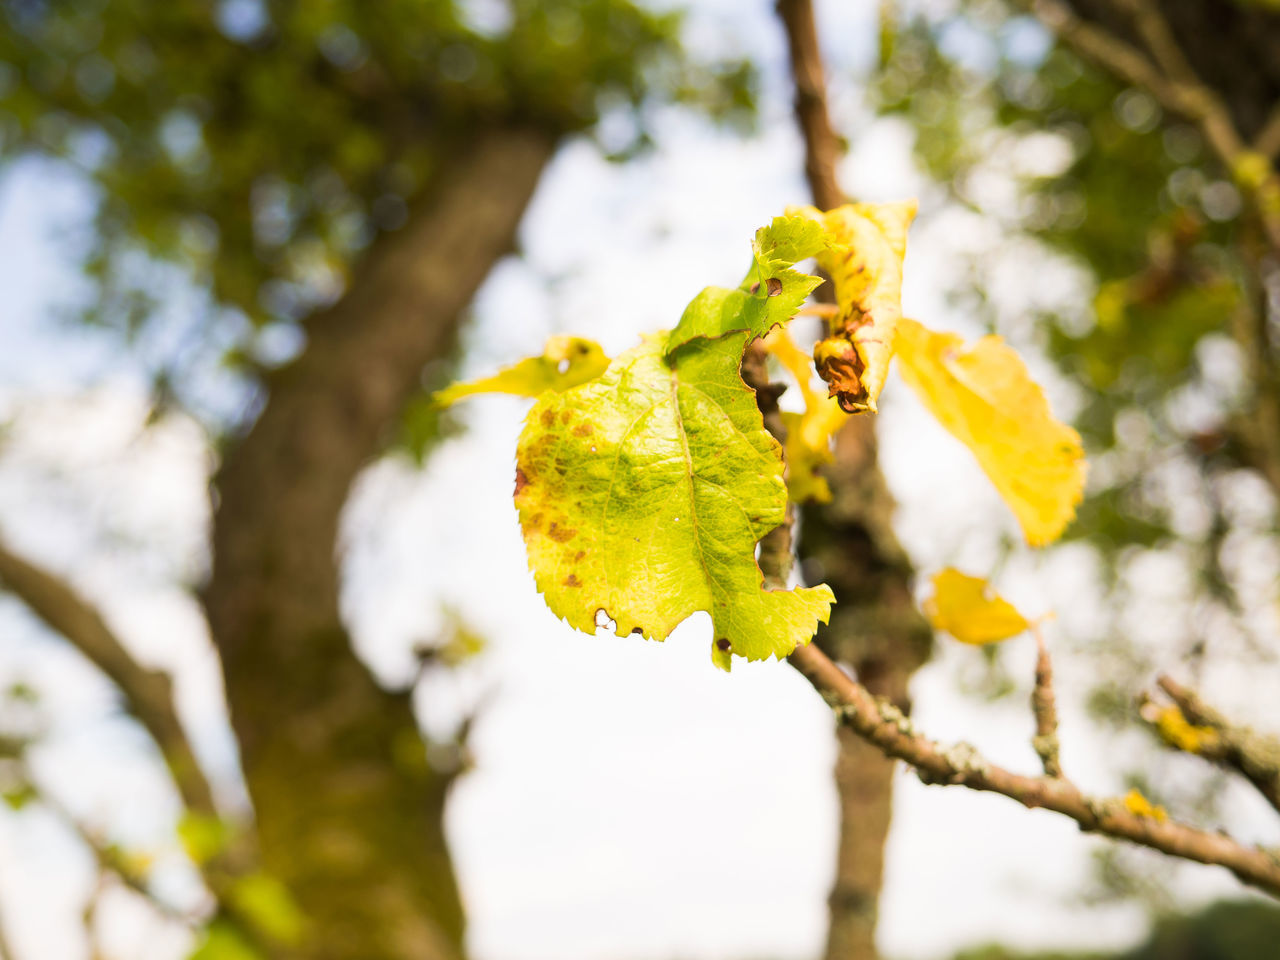 nature, growth, focus on foreground, beauty in nature, day, outdoors, green color, close-up, yellow, low angle view, plant, no people, leaf, flower, tree, fragility, freshness, branch